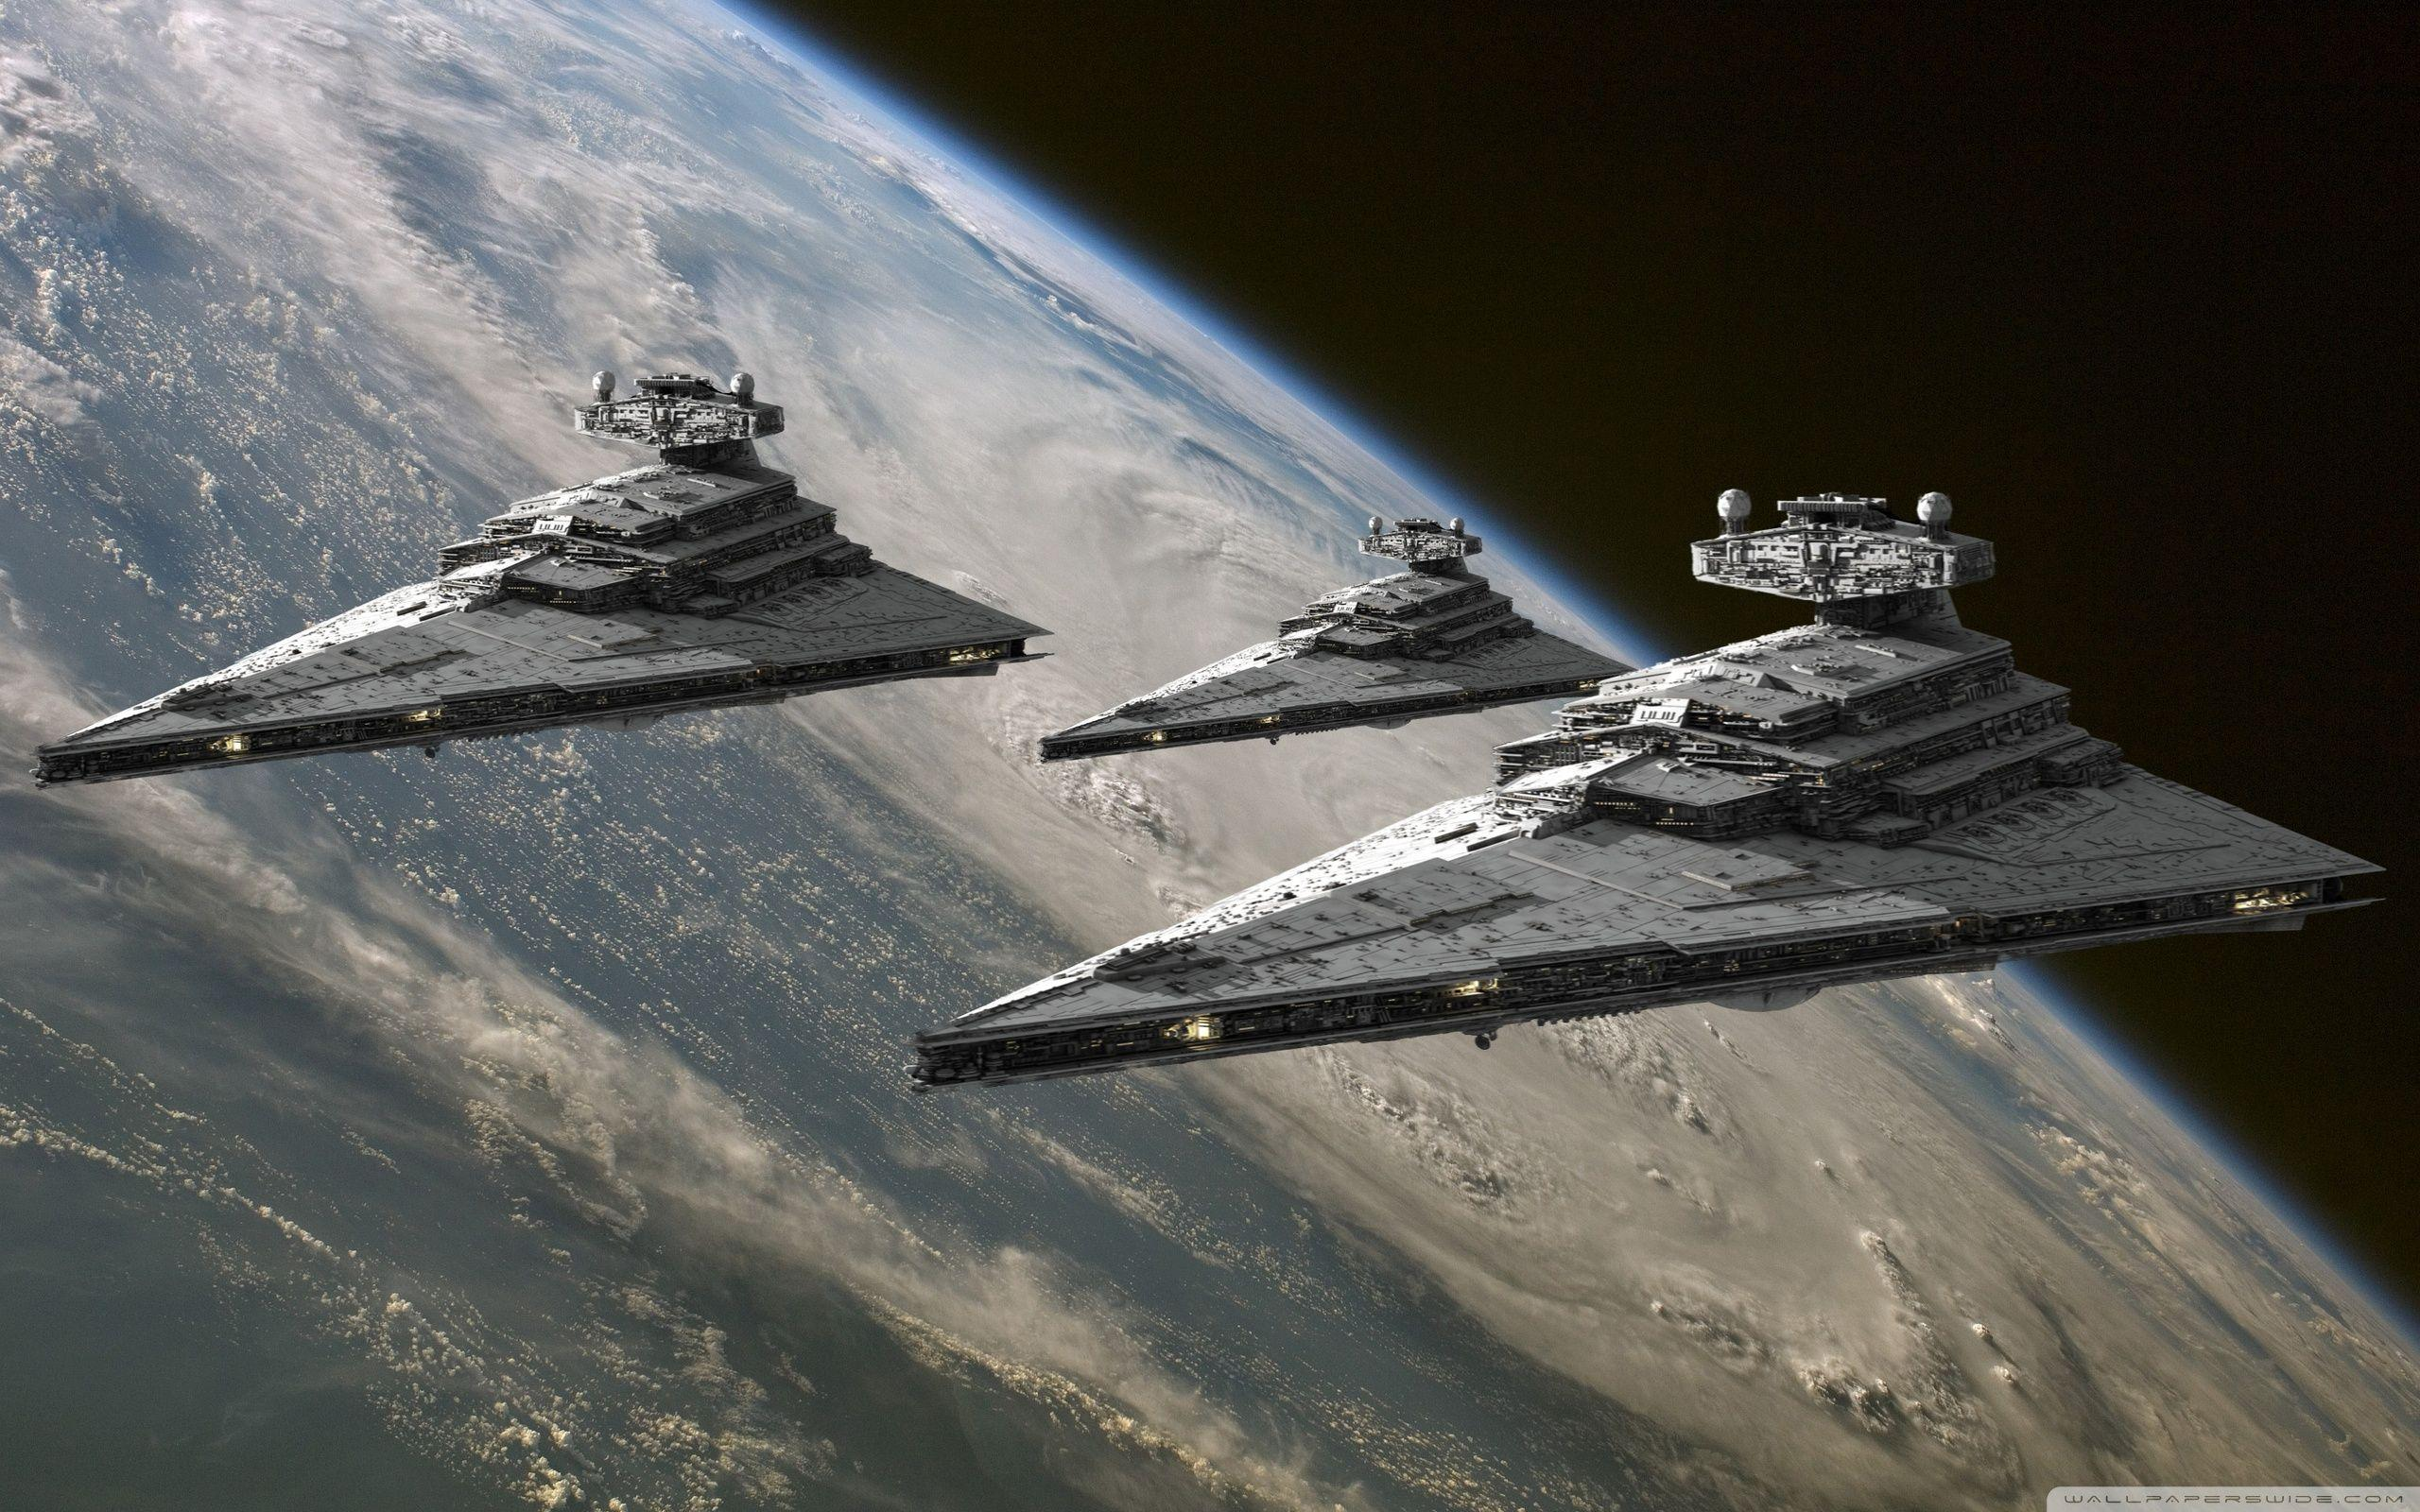 Star Wars Vehicles Wallpapers Wallpaper Cave